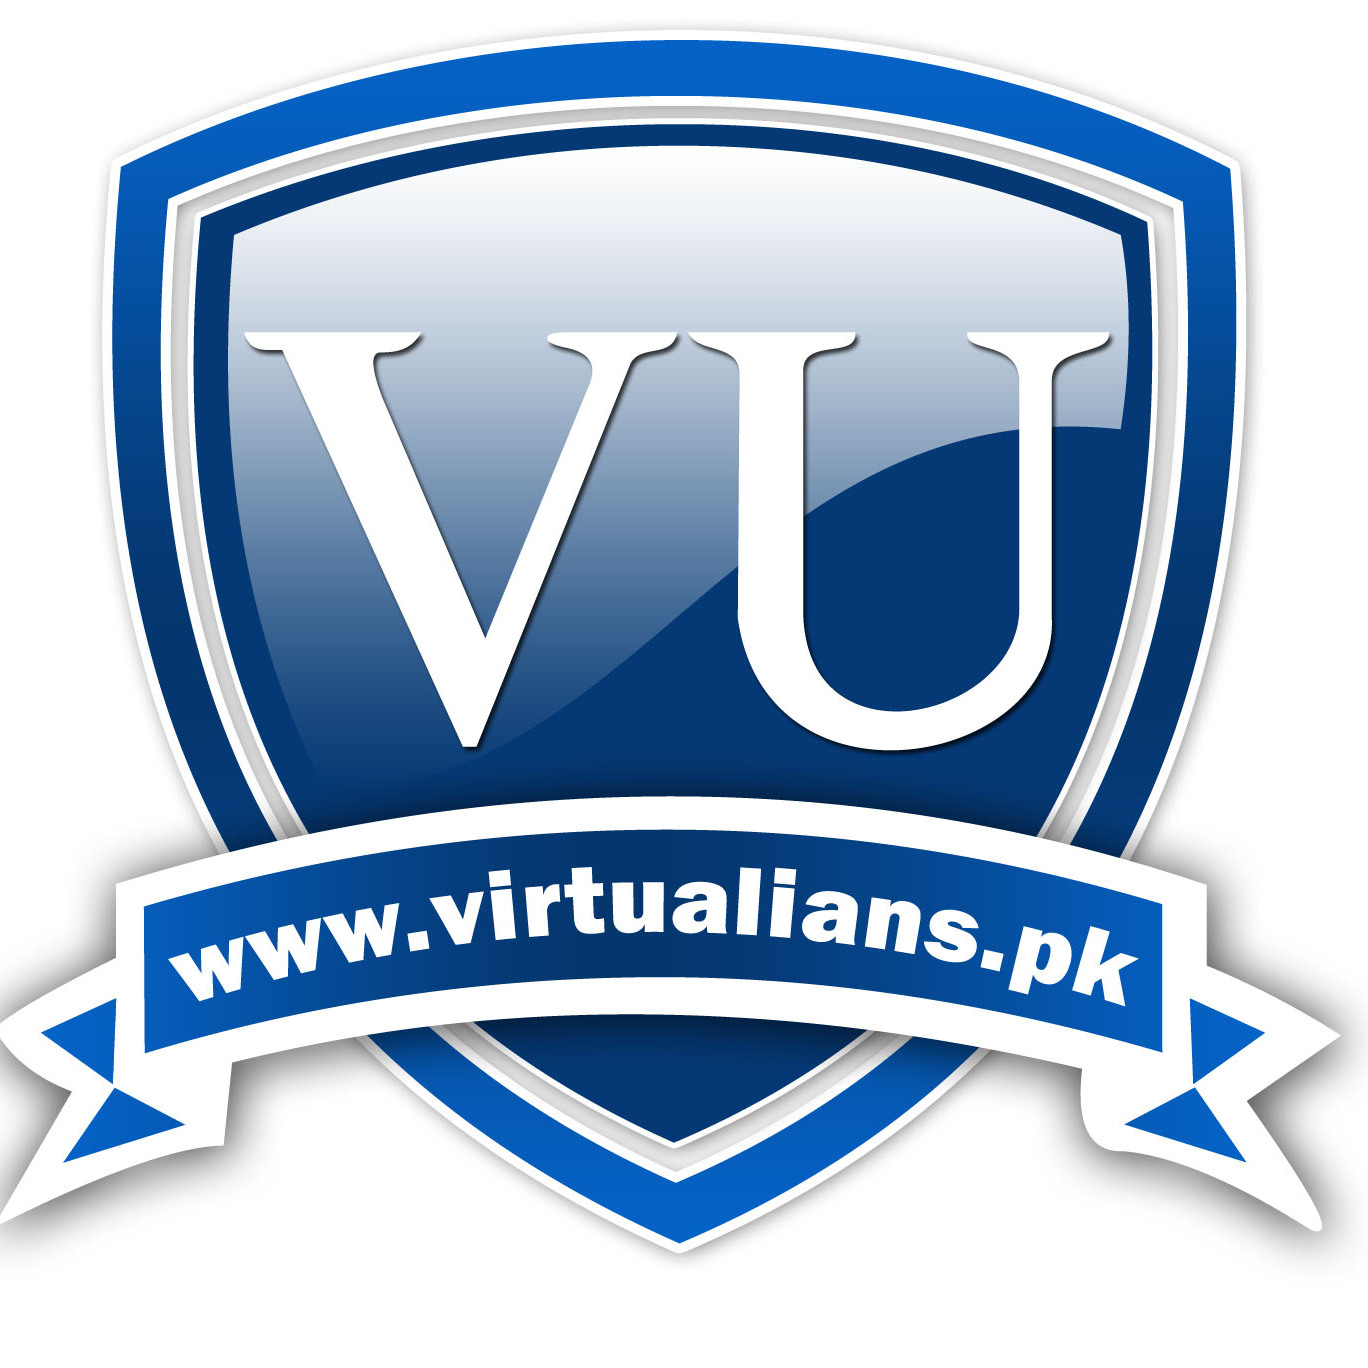 Virtual University of Pakistan (VU) Final-Term Result Announcement - Fall 2018 on Monday March 25, 2019